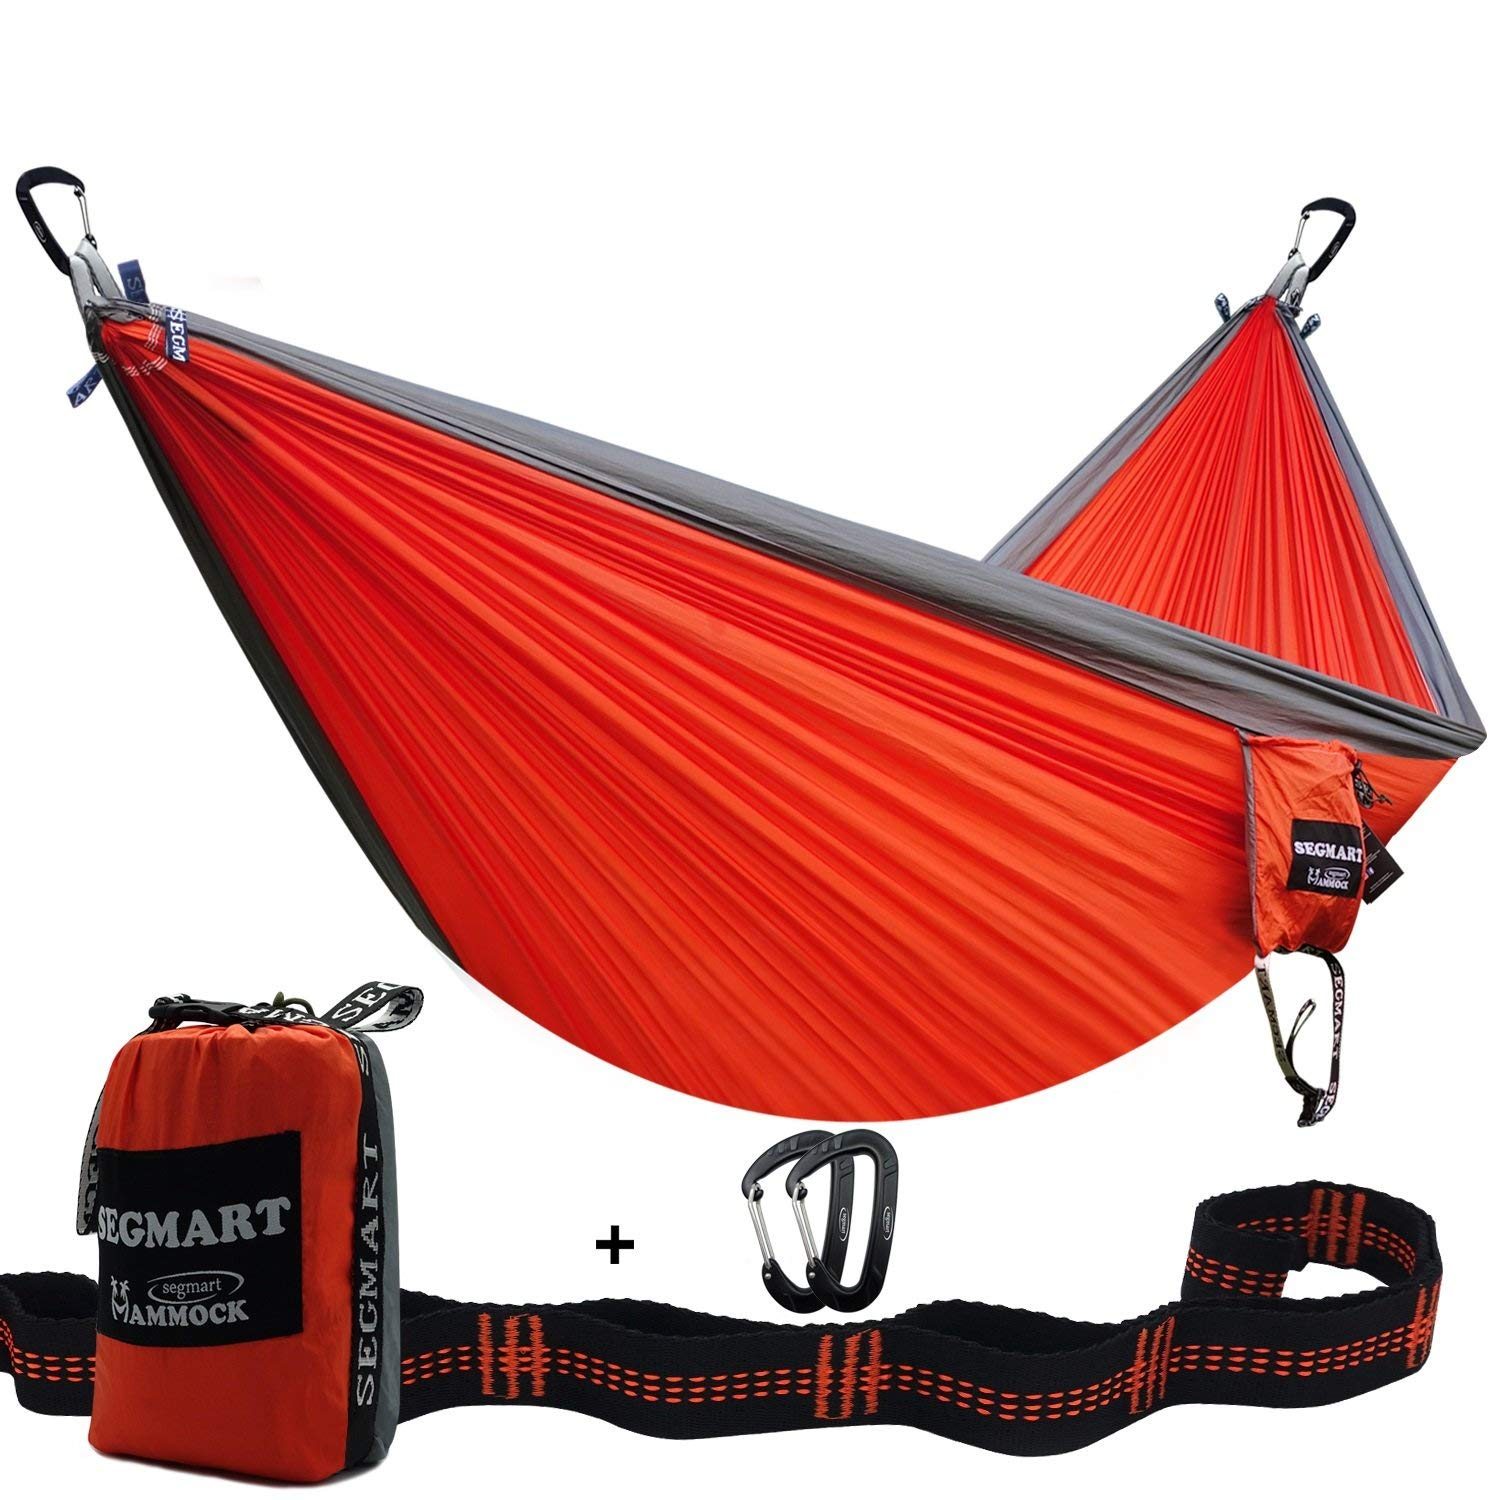 Easy Hanging Tree Hammock with Durable Straps for Camping&Backyard, 600lbs